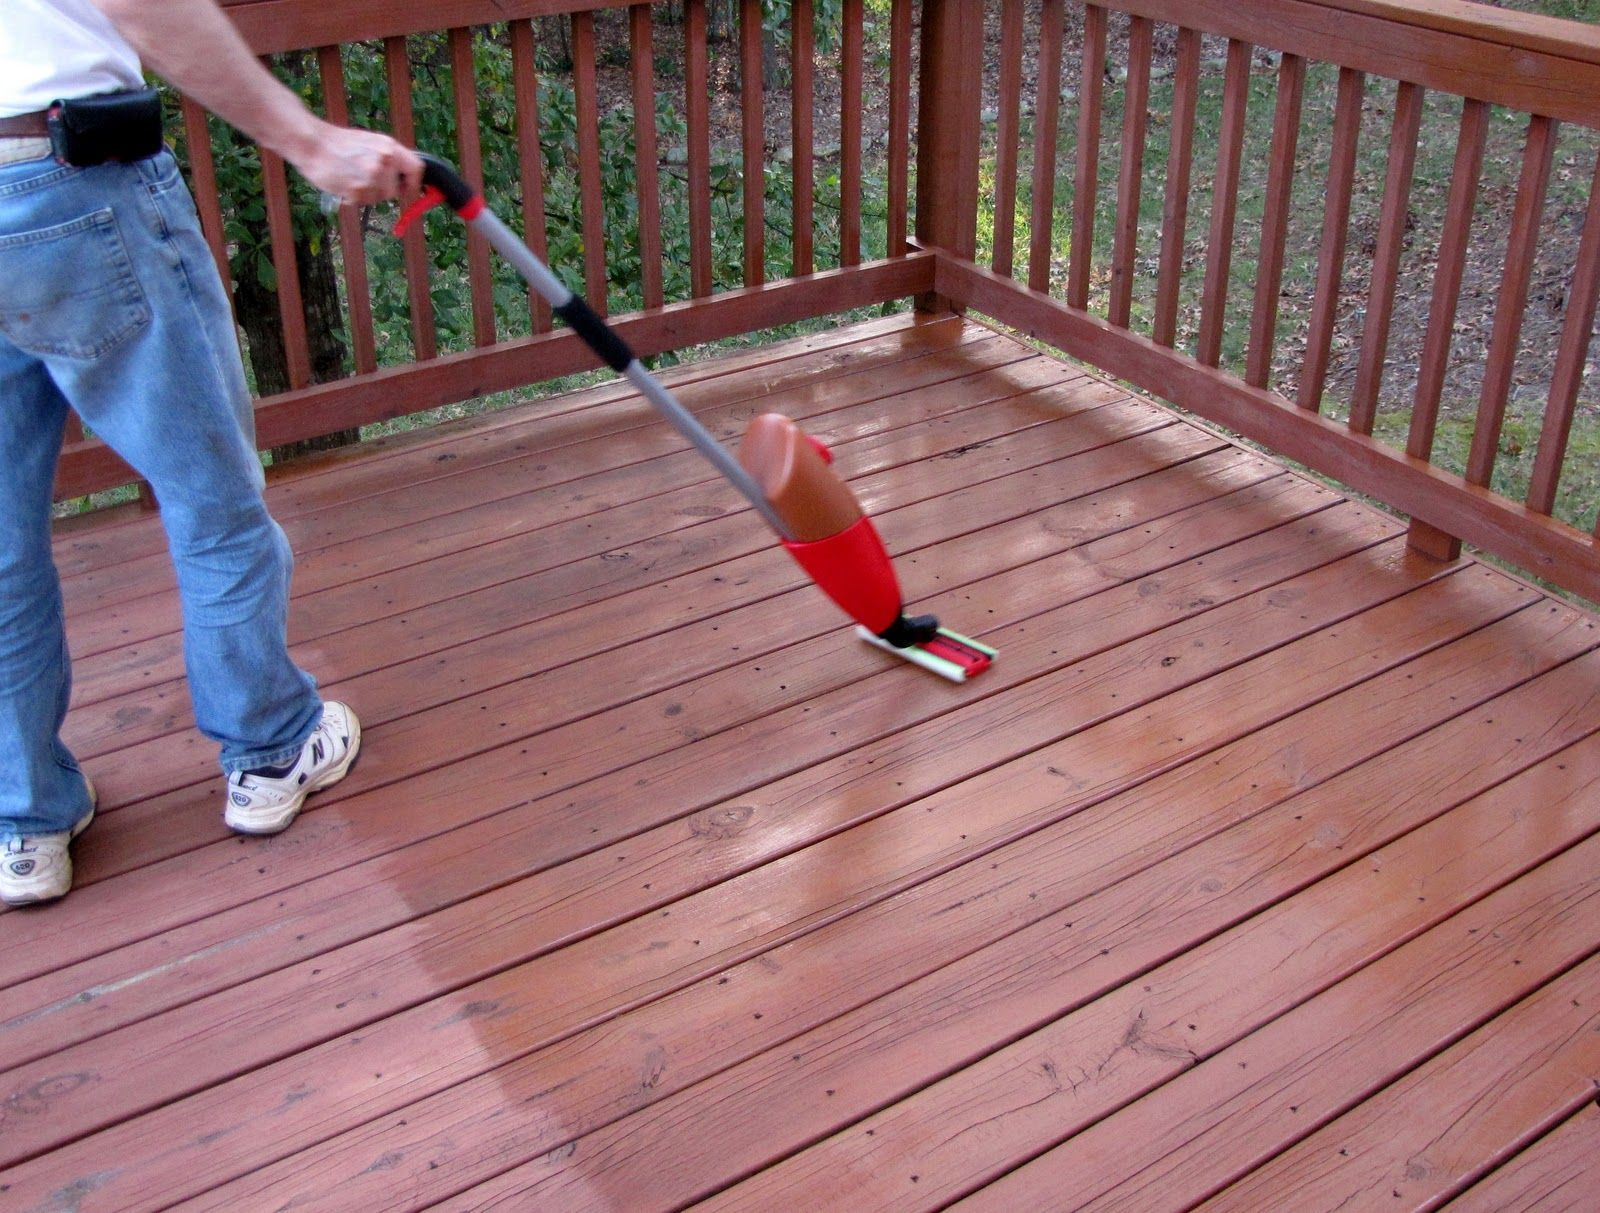 For Staining The Deck Goodbye House Hello Home Homemaking Interior Design Blog Staging Diy Last We Staining Deck Interior Design Blog Backyard Design